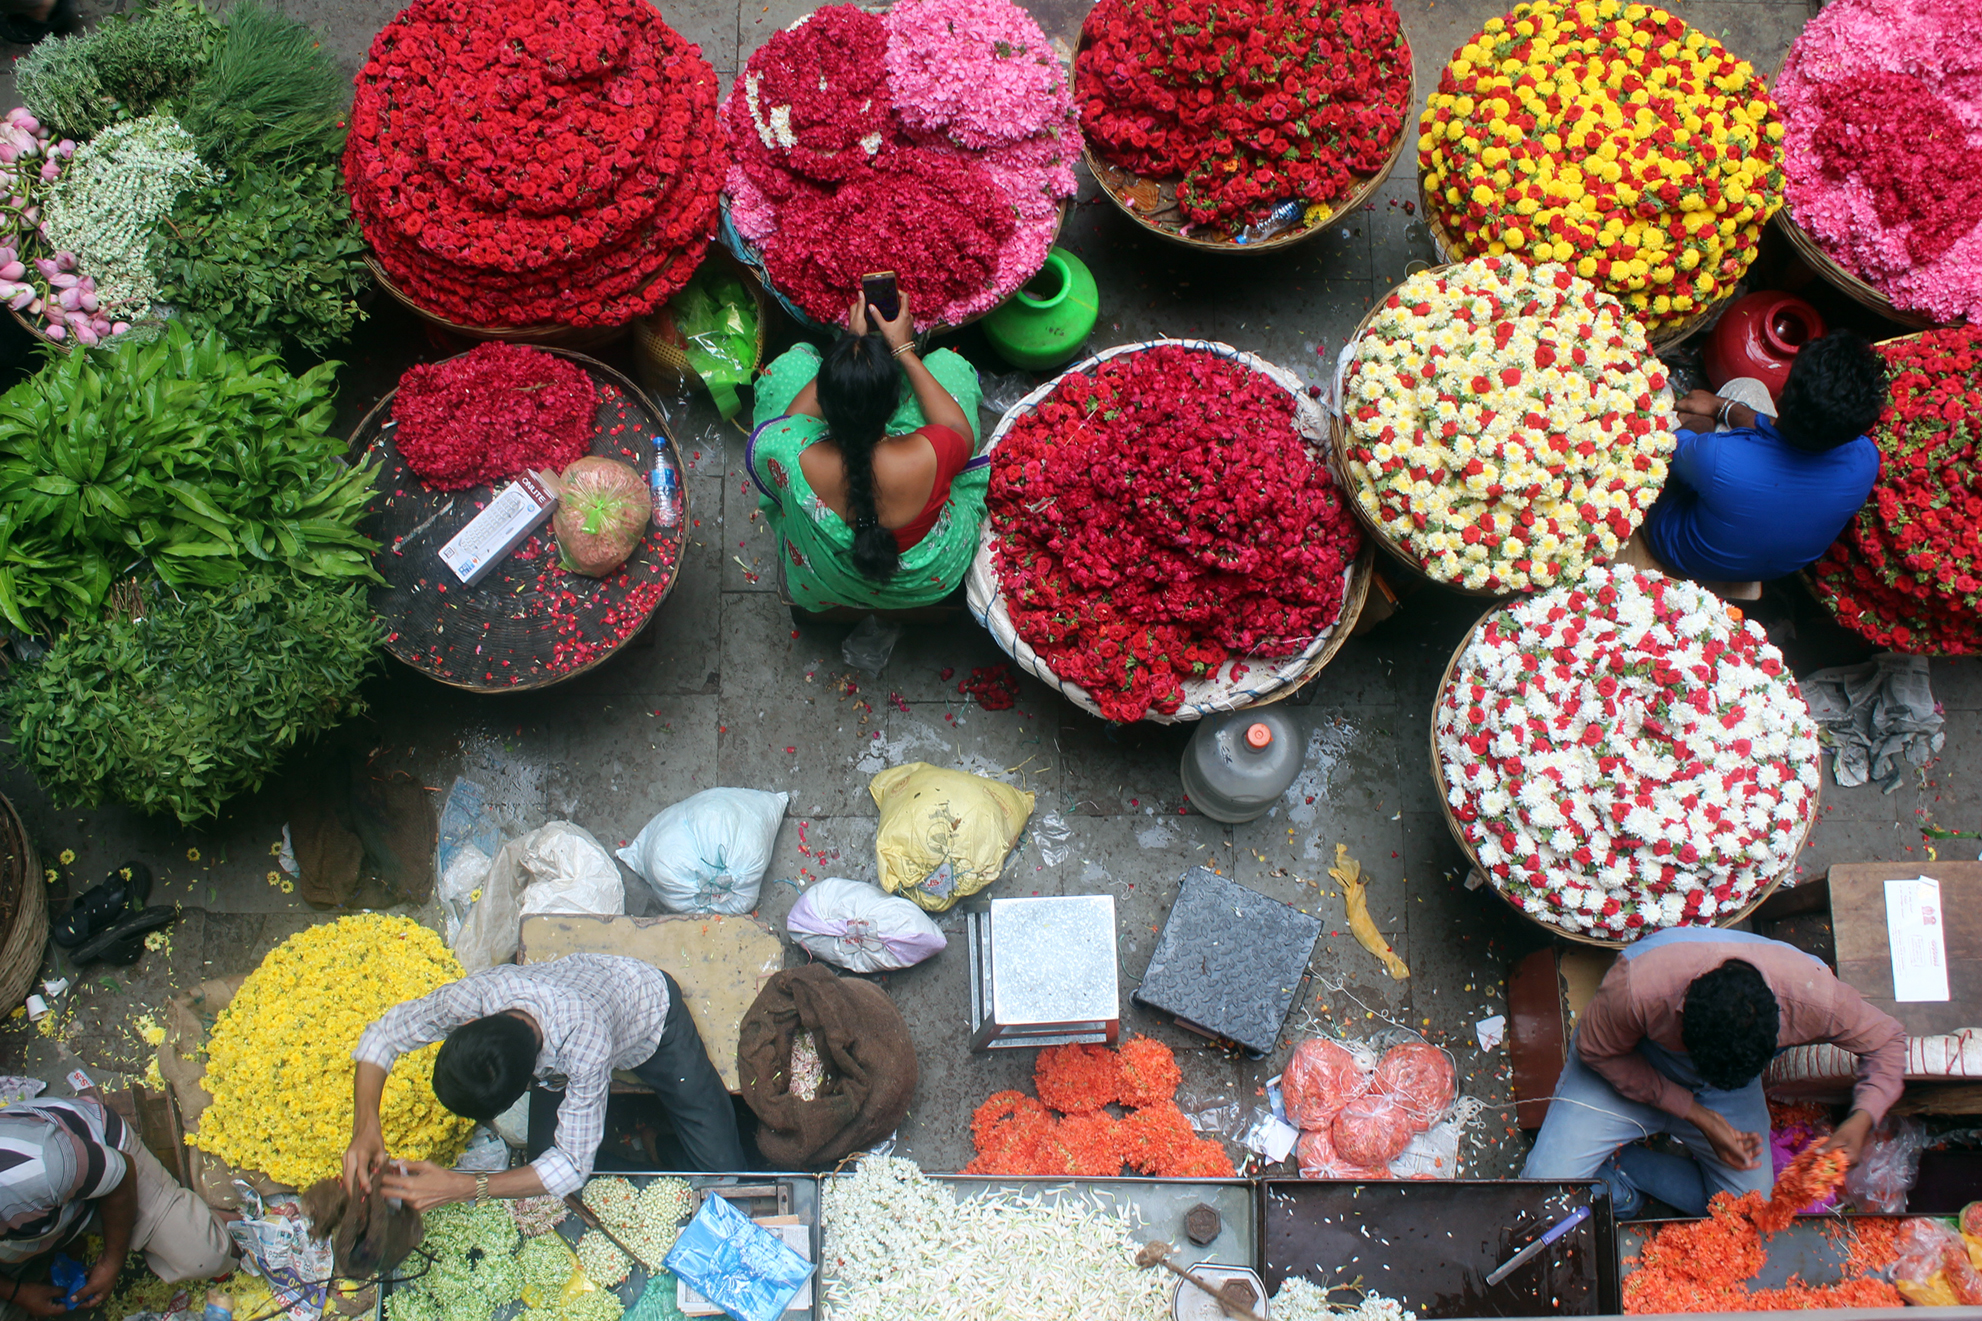 Looking down from above on people sorting flowers in a market